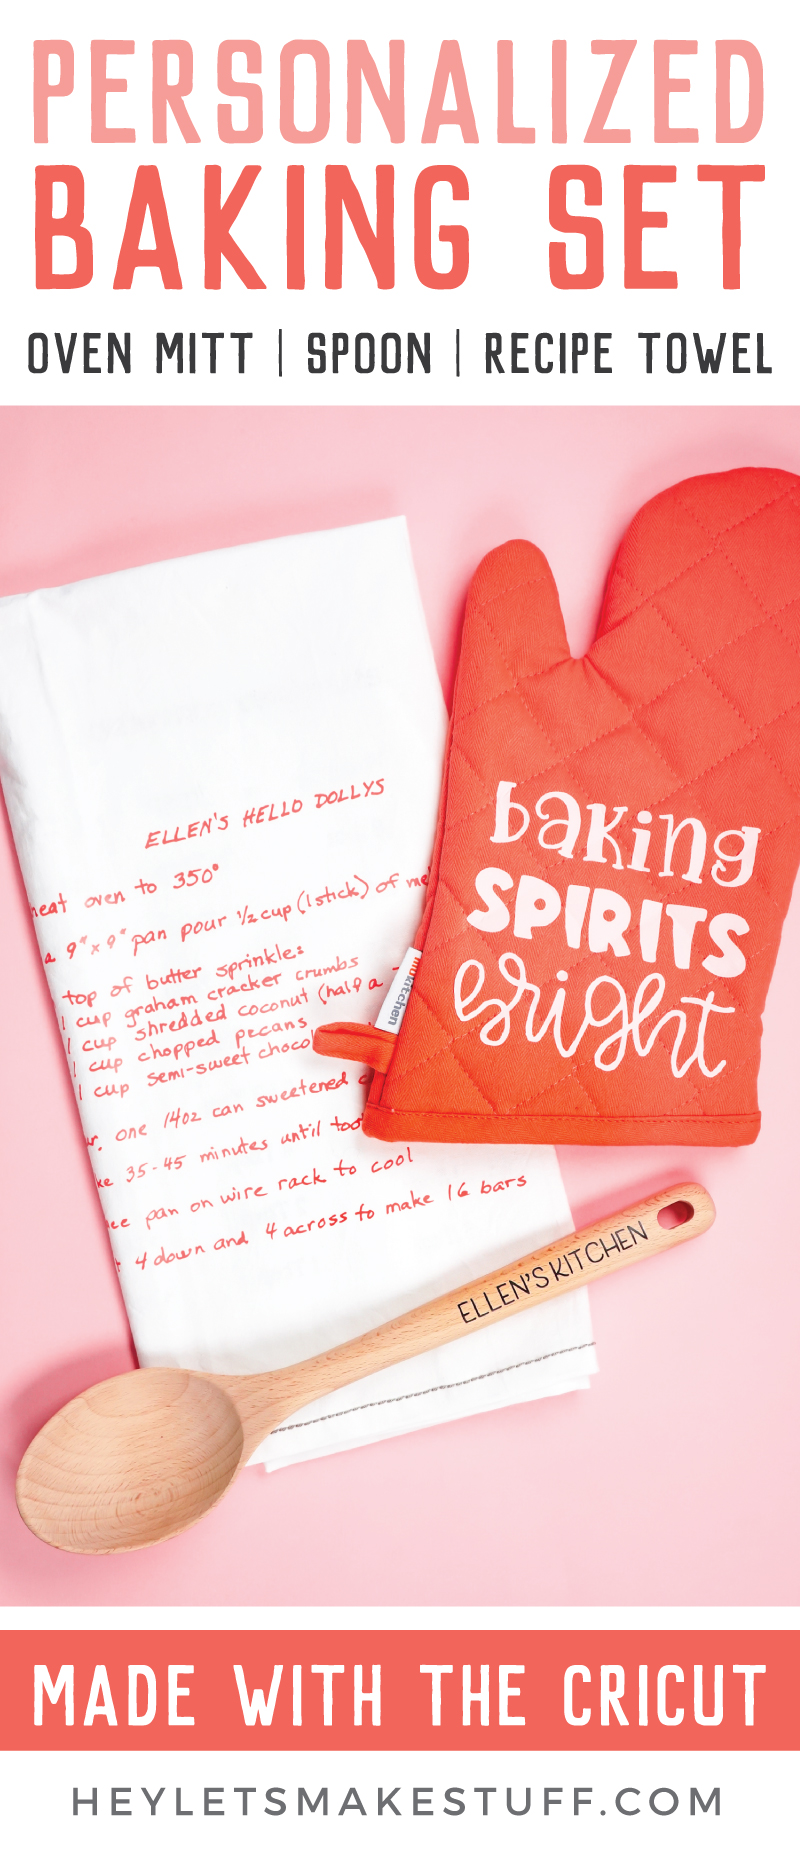 Want to make a personalized Christmas gift for your mom or other favorite baker? This DIY baking set includes an oven mitt, a keepsake towel with a family recipe and customized baking spoon, all made with your Cricut and iron on vinyl! via @heyletsmakestuf